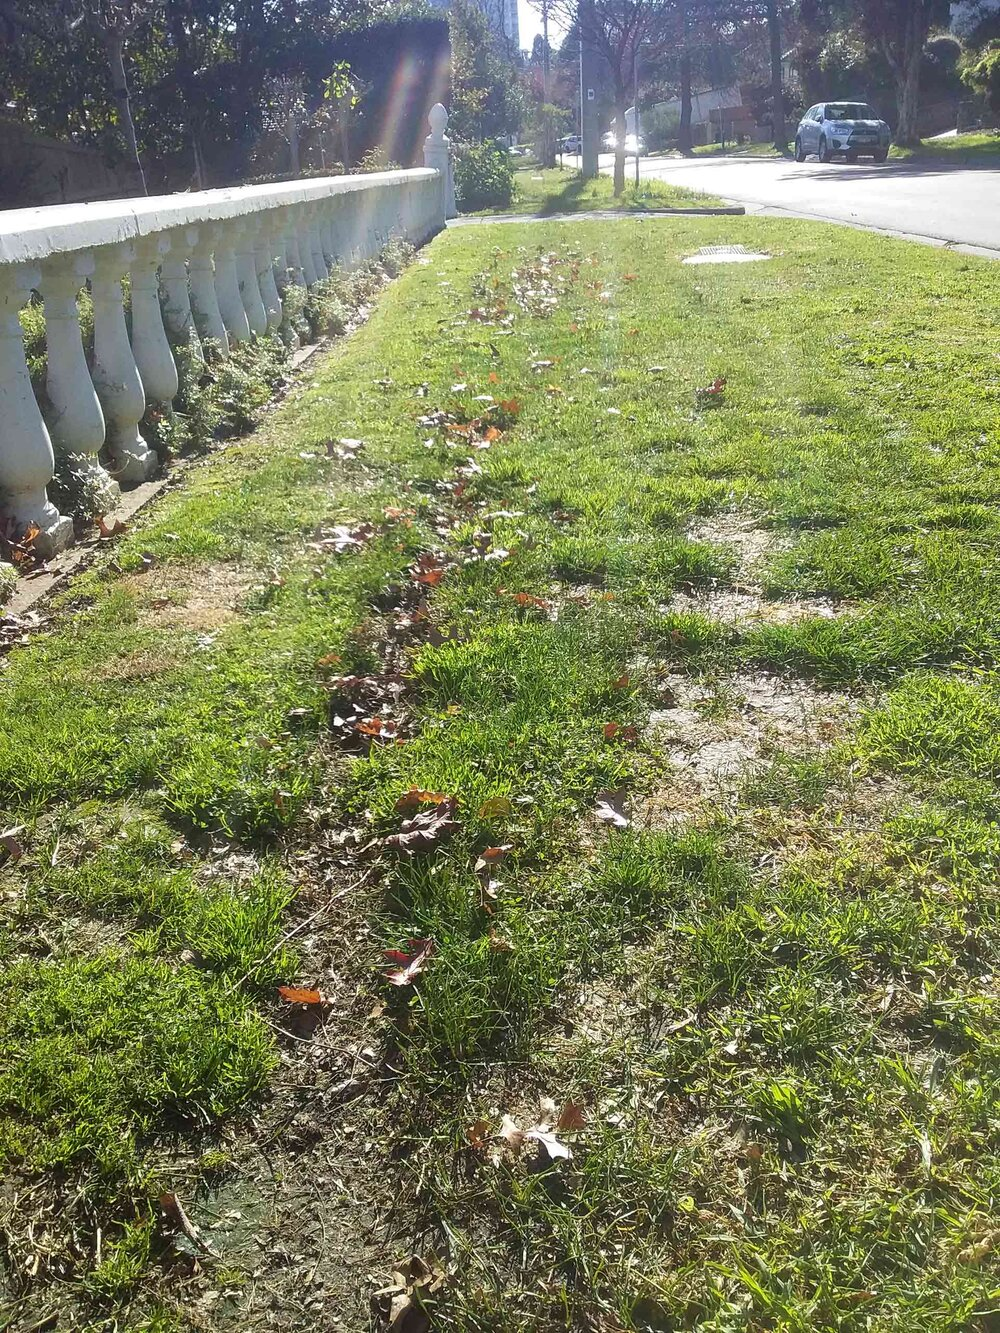 In this image, the brushcutter worked their way along the fence on the left towards us, which is anti-clockwise. Notice how all the dry leaves that were along that fenceline trapped under the seaside daisy bushes has been pushed back onto the lawn which has already been mown. Now this patch has to be mown again. Image via Plants Grow Here.